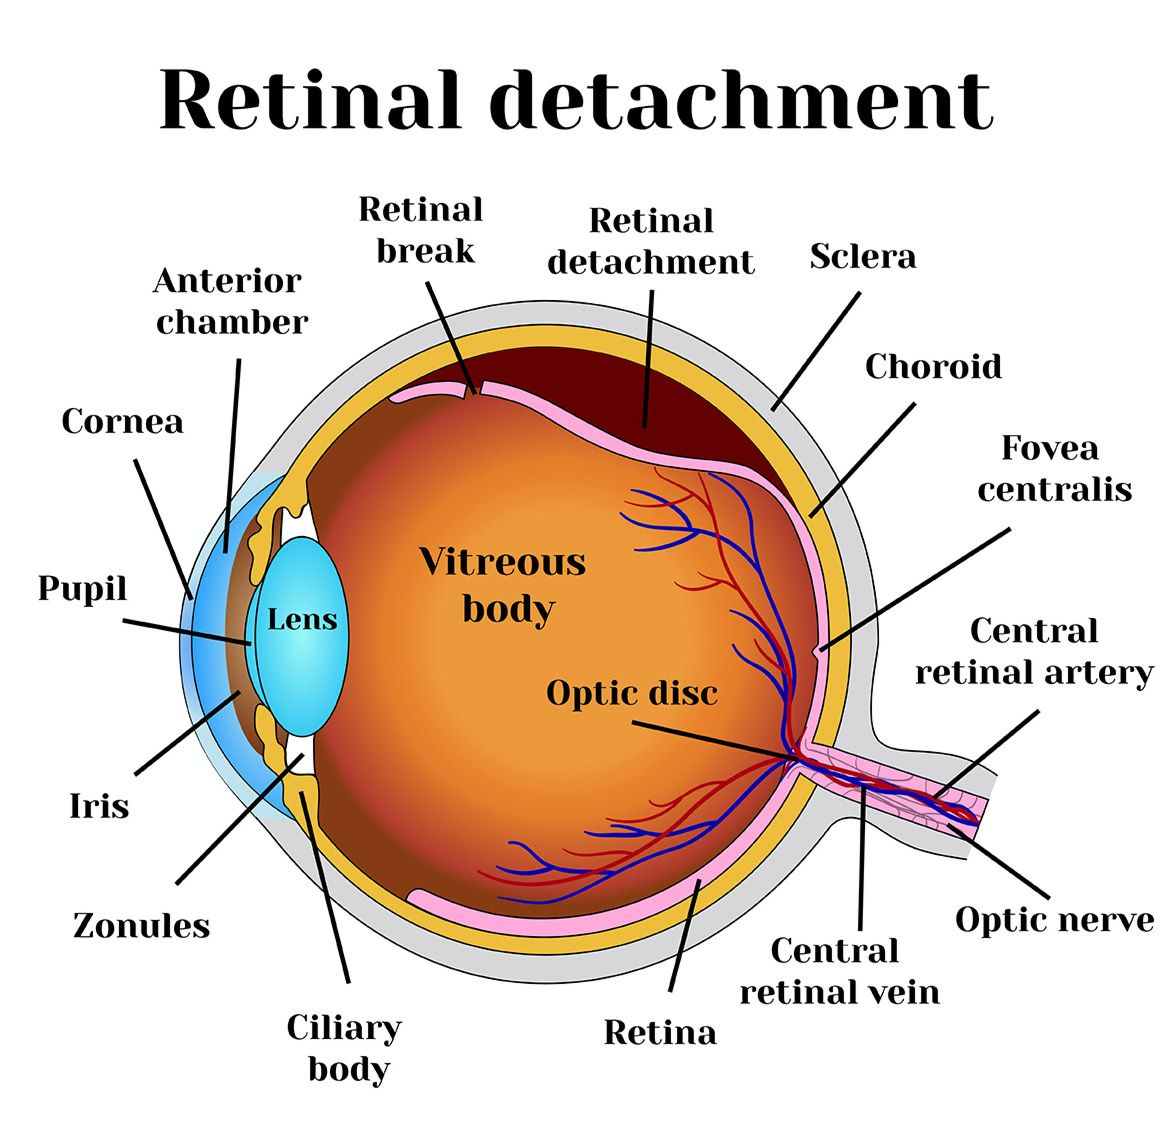 Illustration of retinal detachment